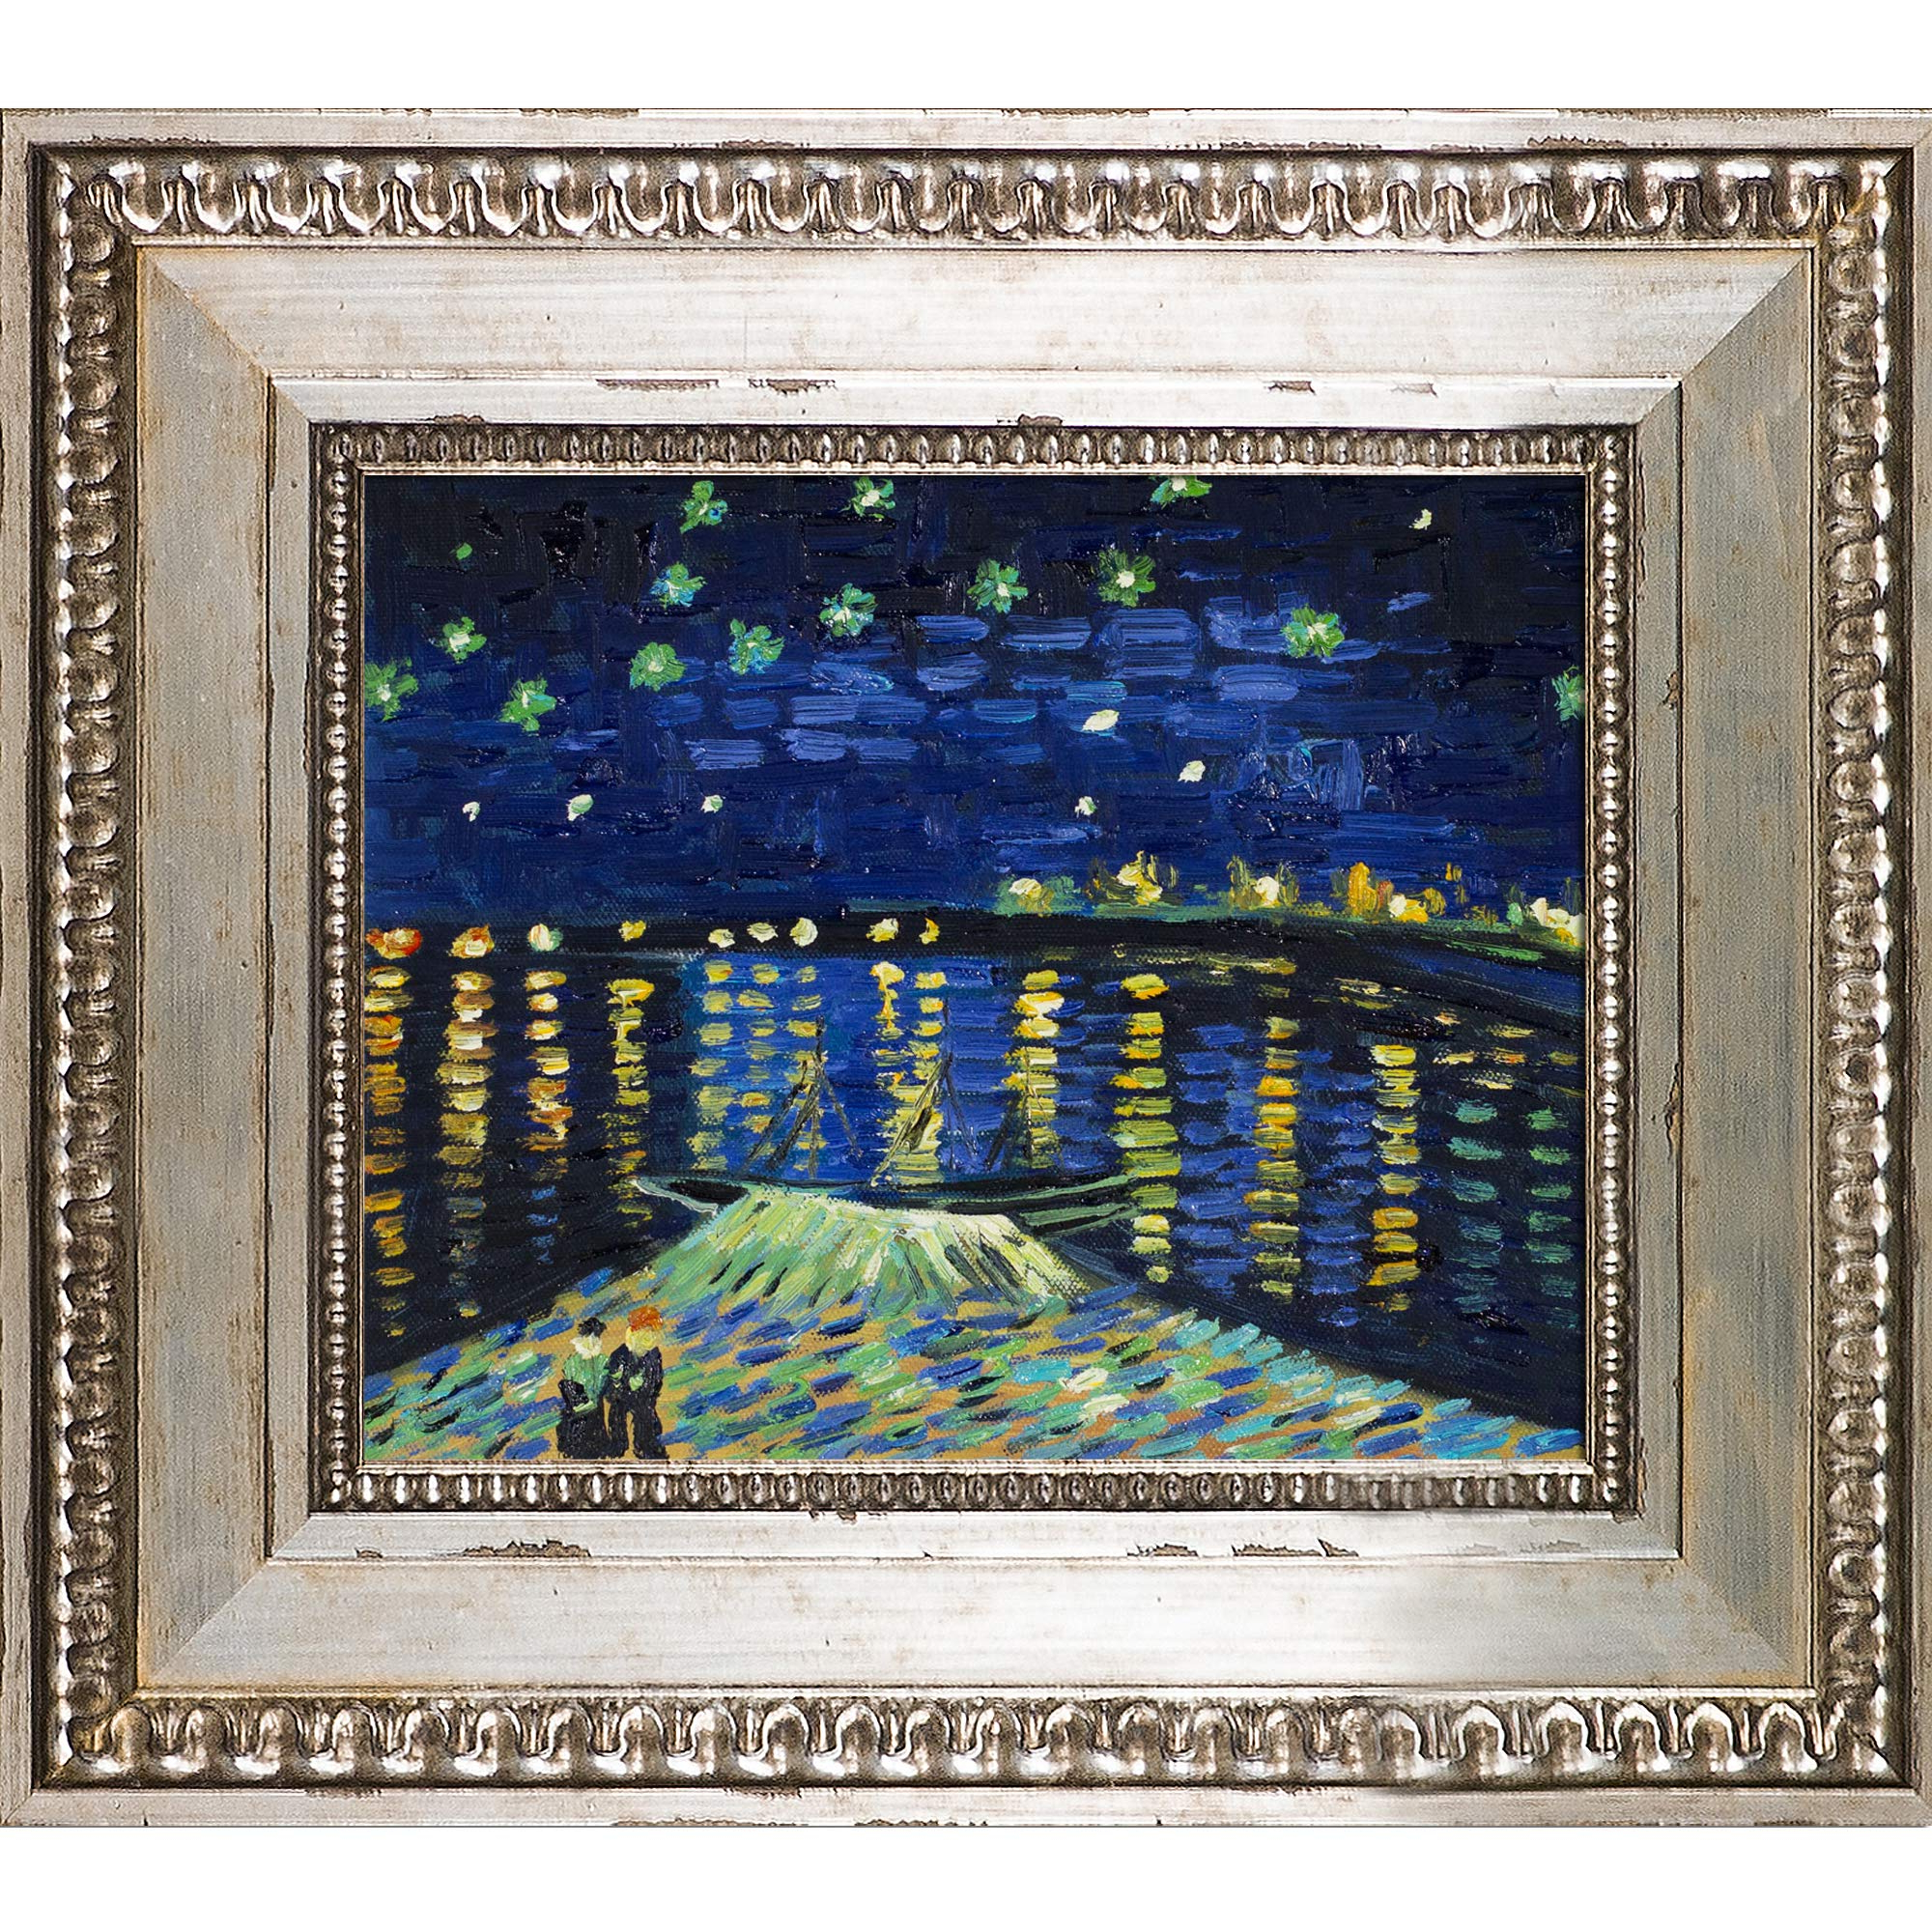 Preferred La Pastiche Starry Night Over The Rhone Framed Oil Painting For Blended Fabric Van Gogh Starry Night Over The Rhone Wall Hangings (View 10 of 20)